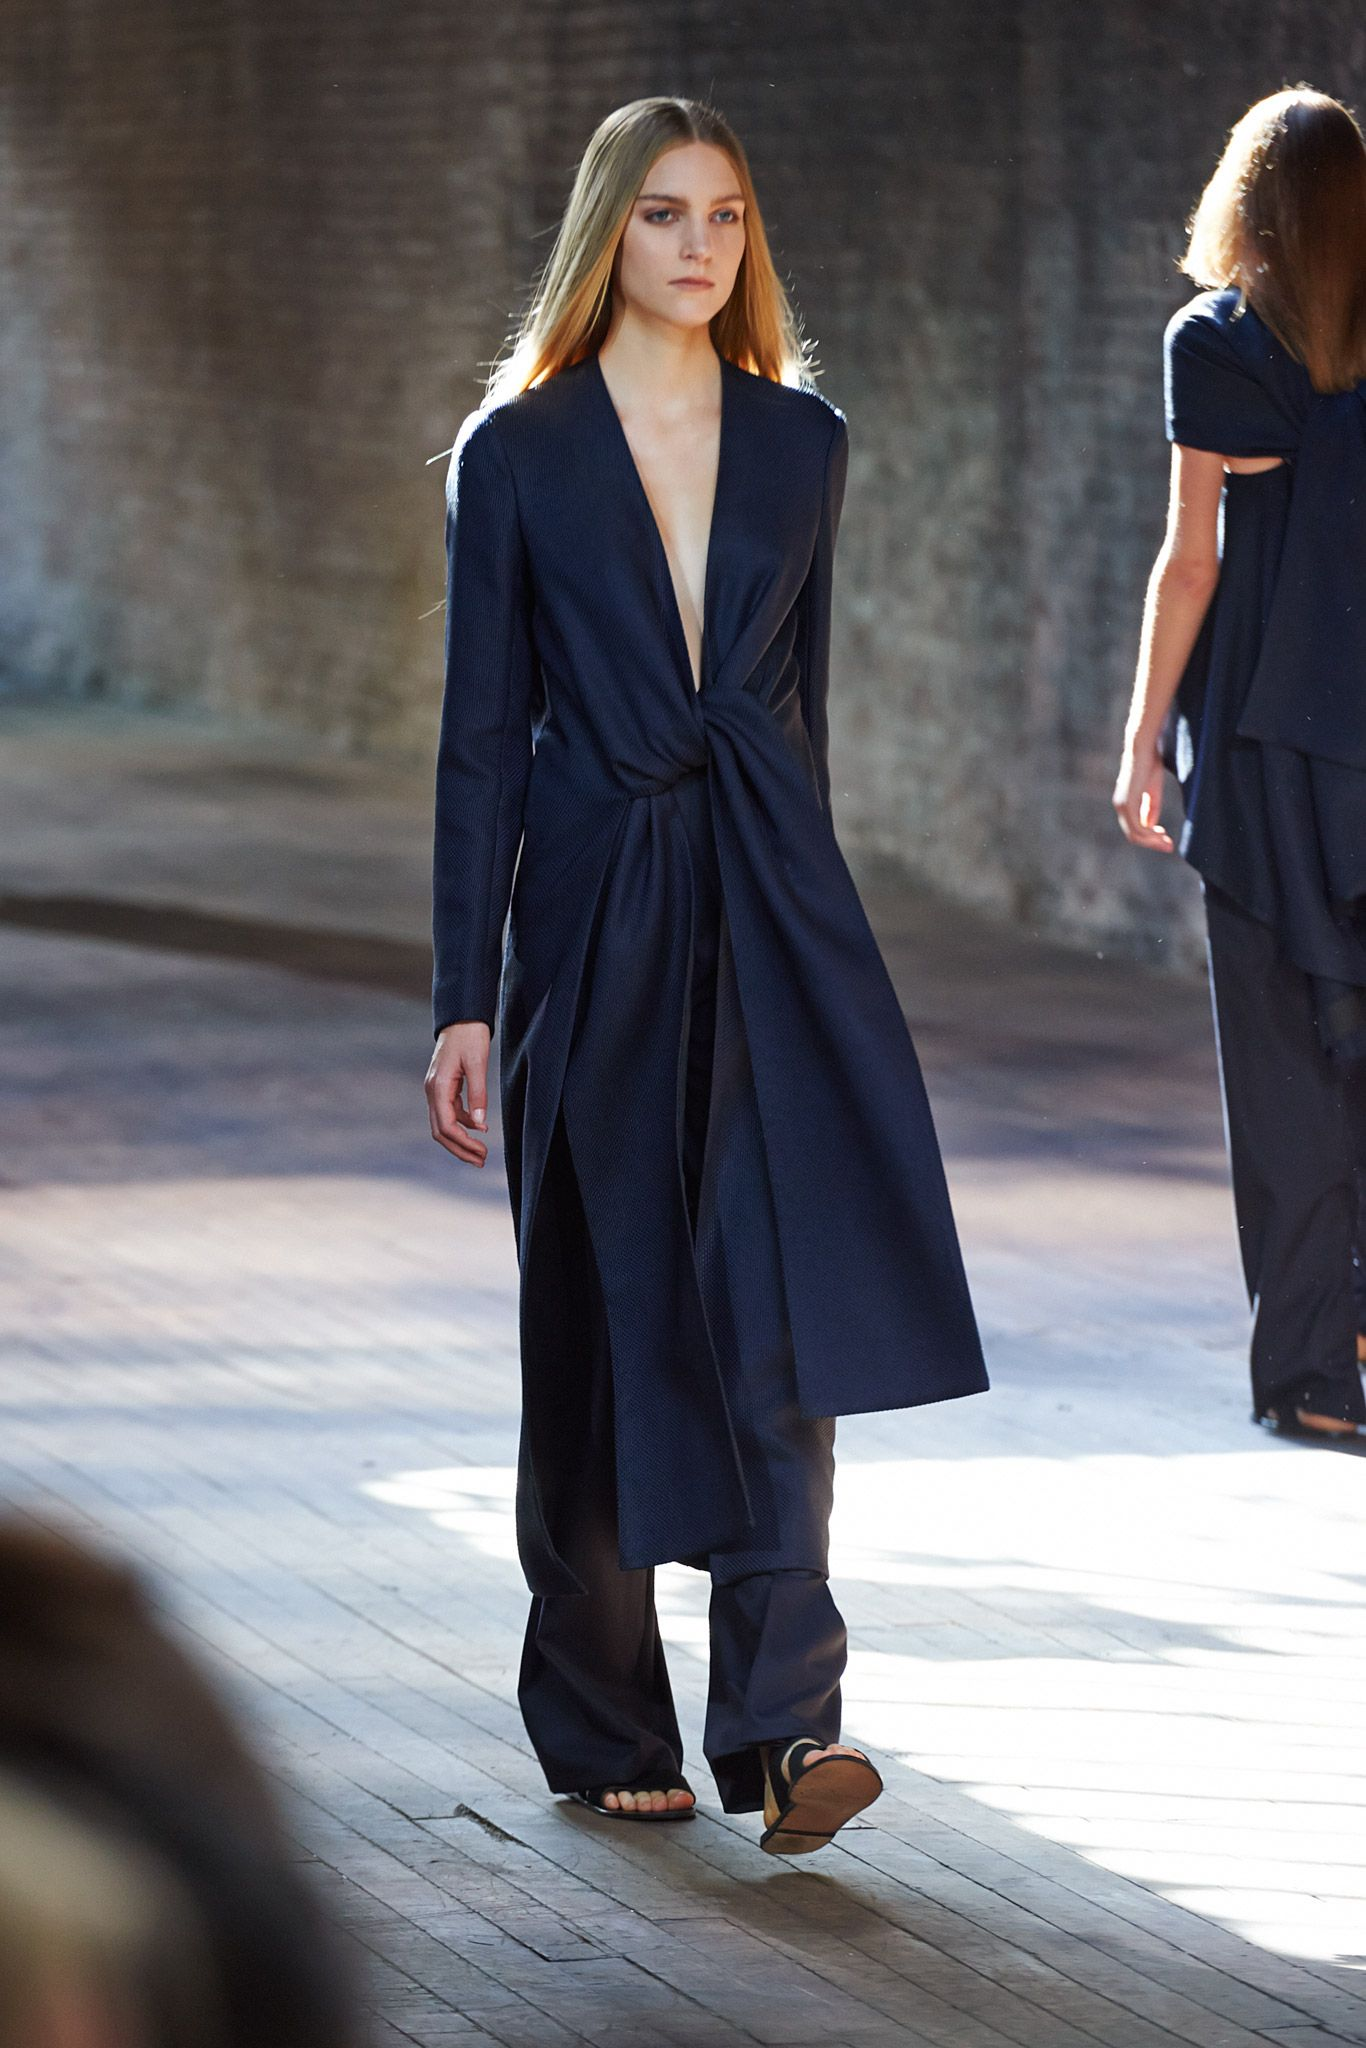 The Row Spring 2015 Ready to Wear Collection Gallery Look 1